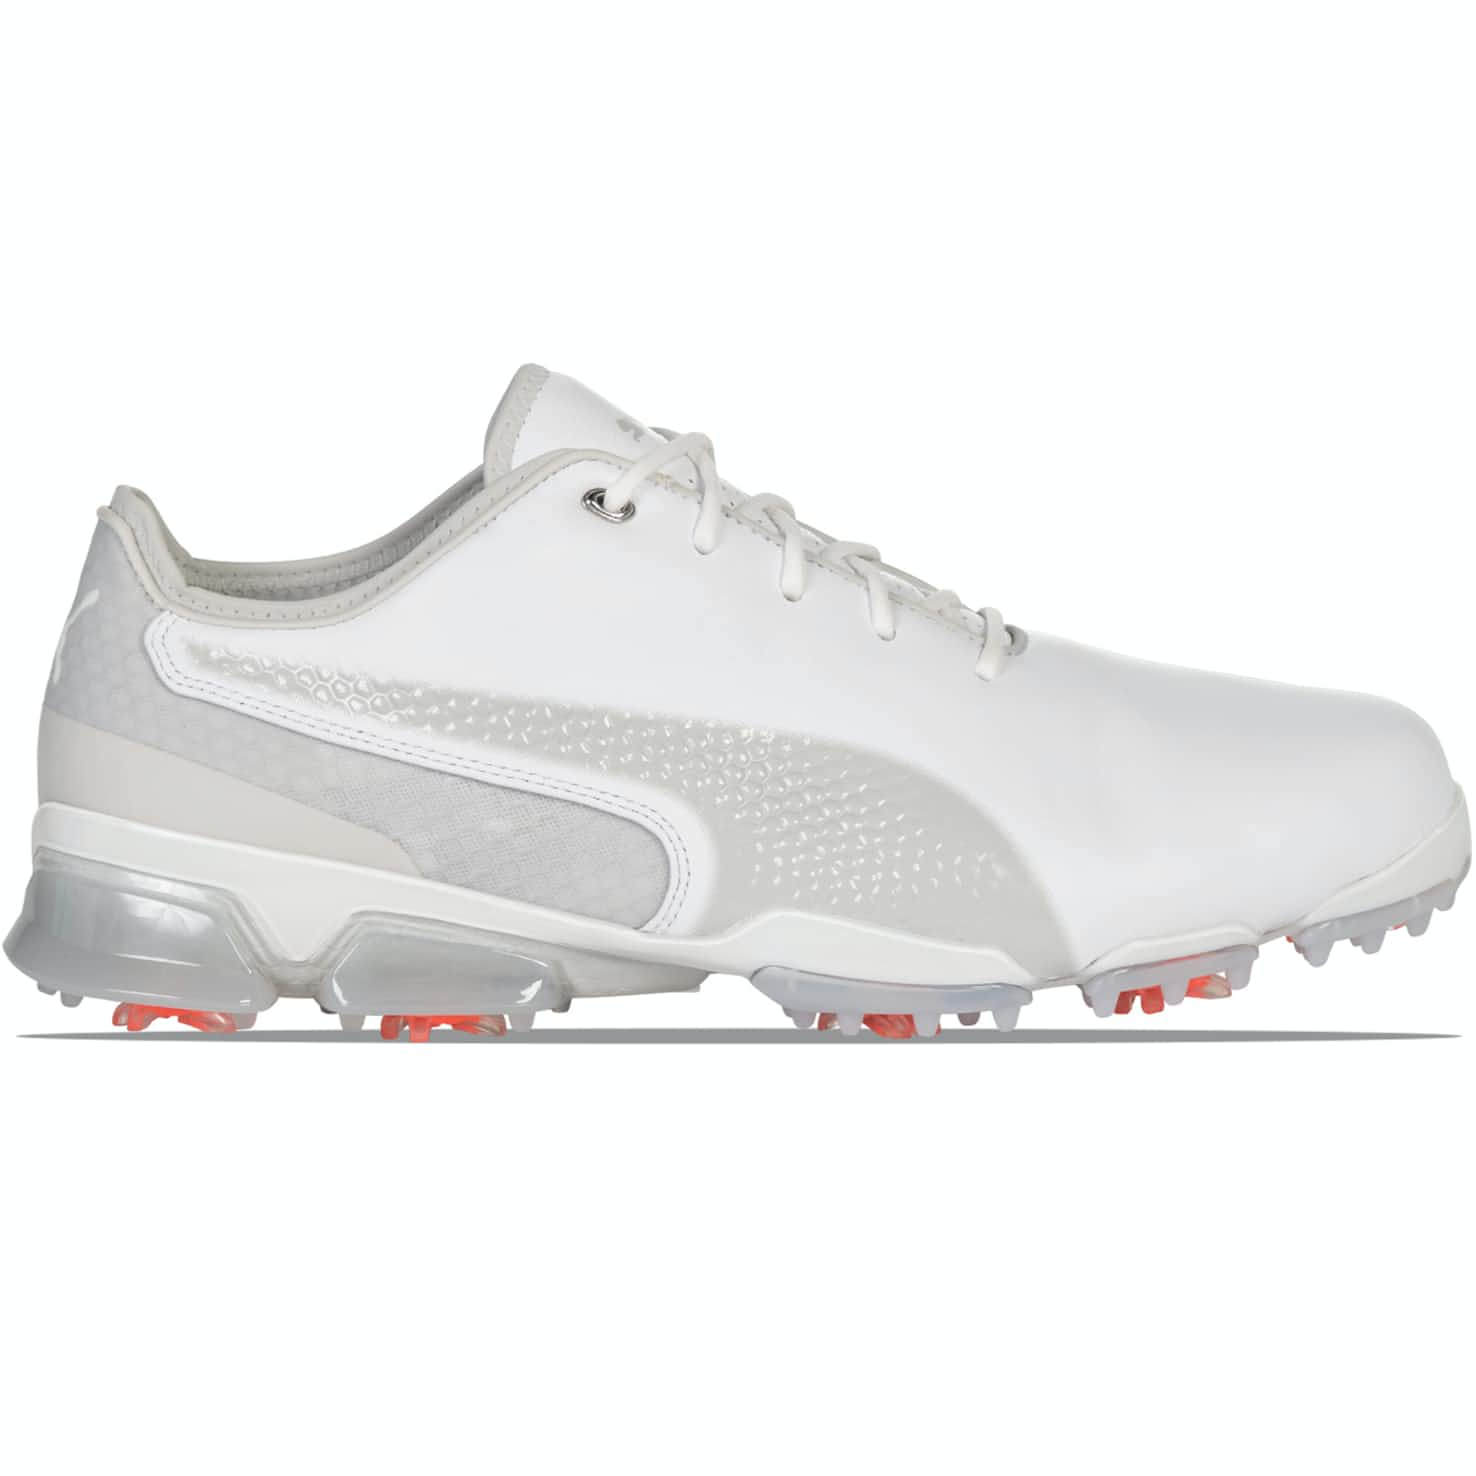 Ignite Pro Adapt Shoes White/Grey Violet - 2019